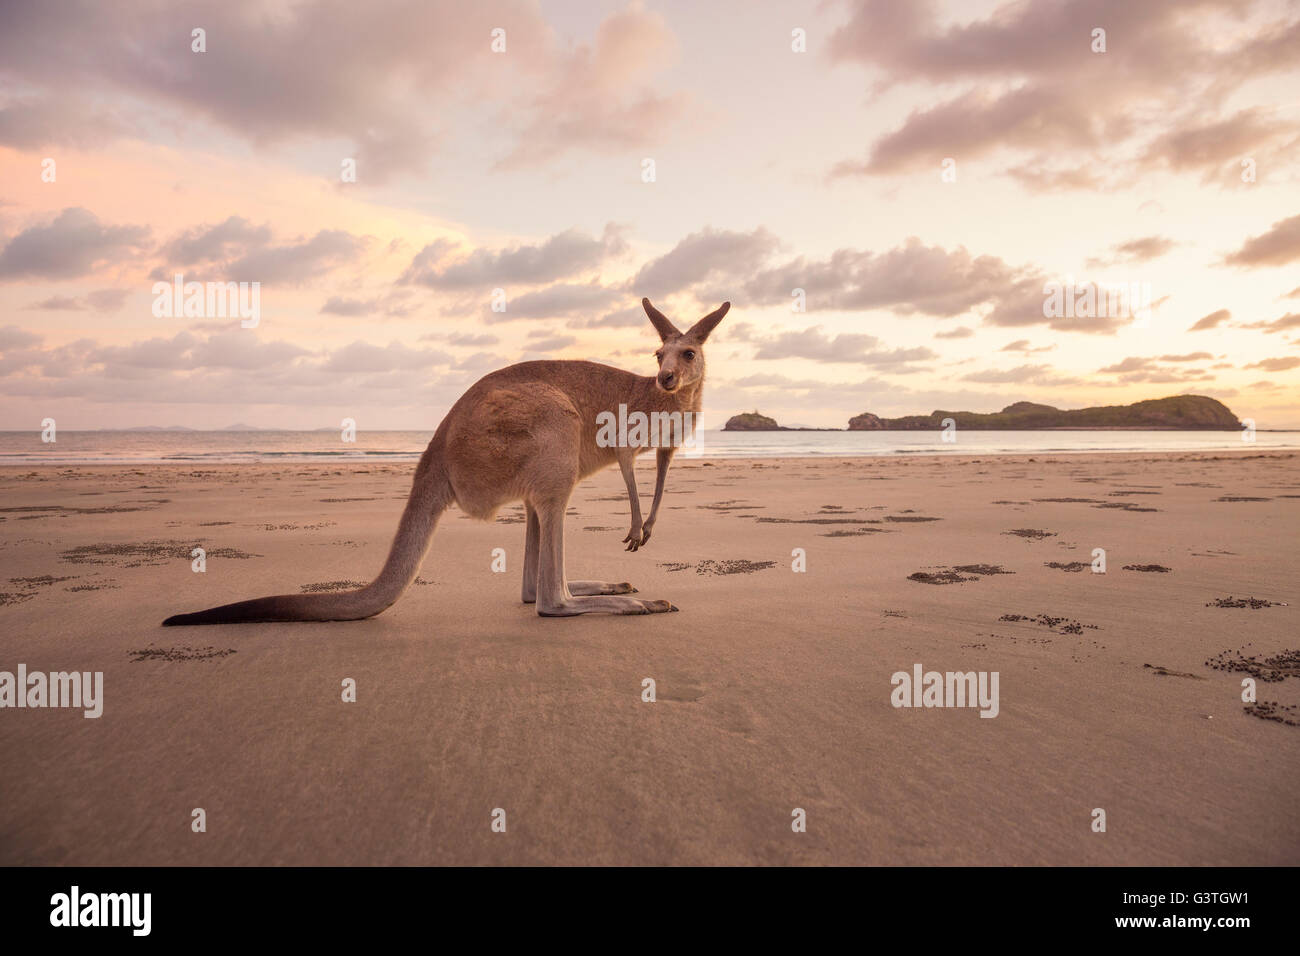 L'Australie, Queensland, Cape Hillsbourgh, kangourou (Macropus) sur la plage au coucher du soleil Photo Stock